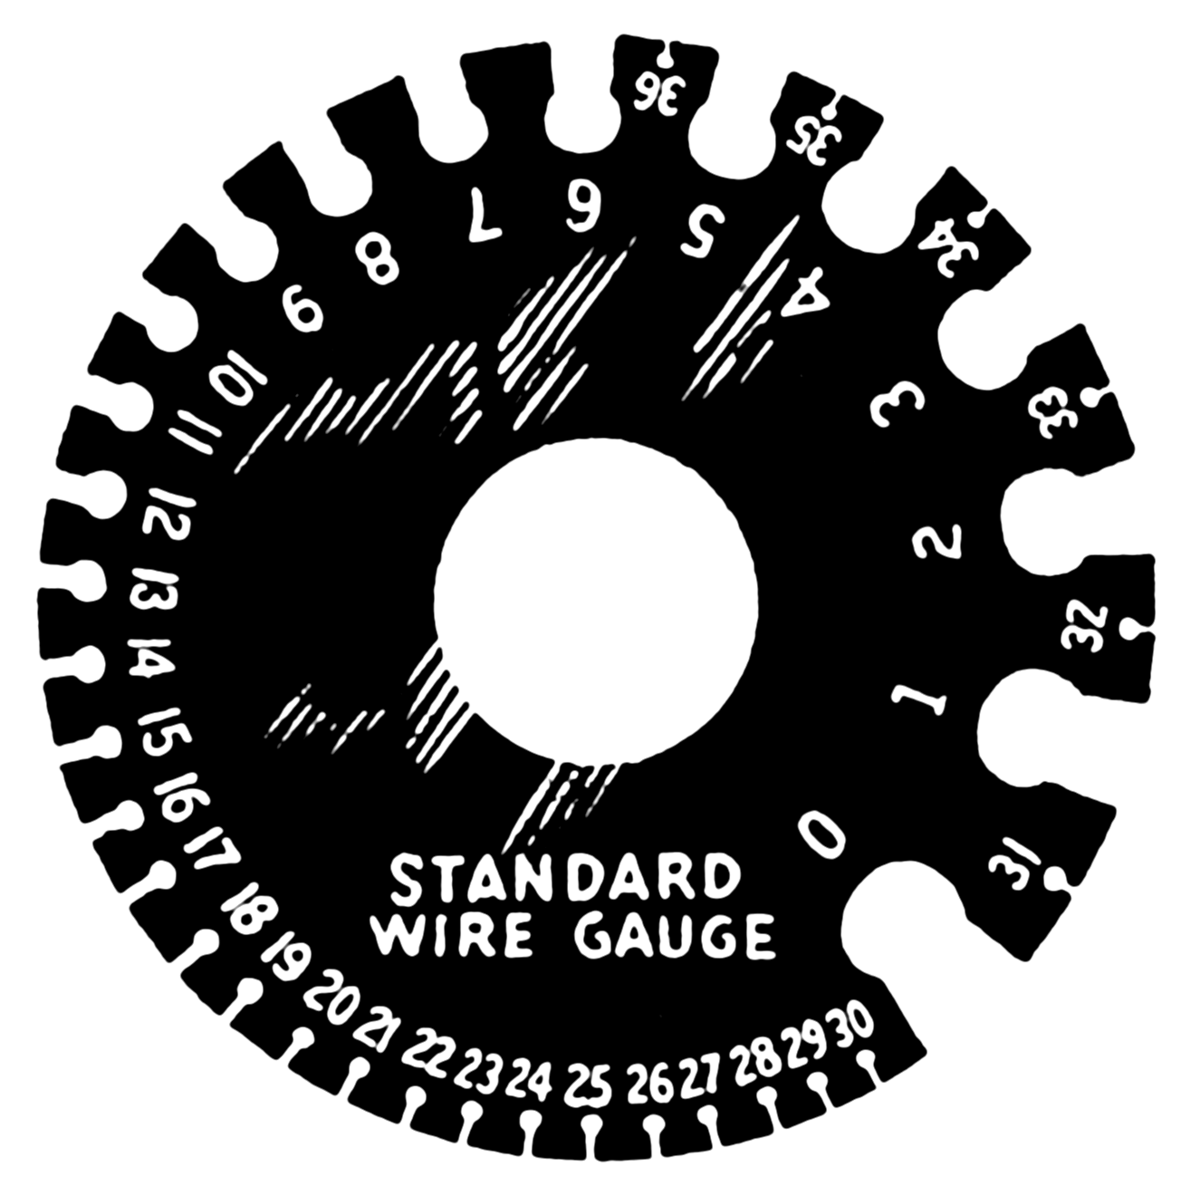 Standard wire gauge wikipedia keyboard keysfo Gallery